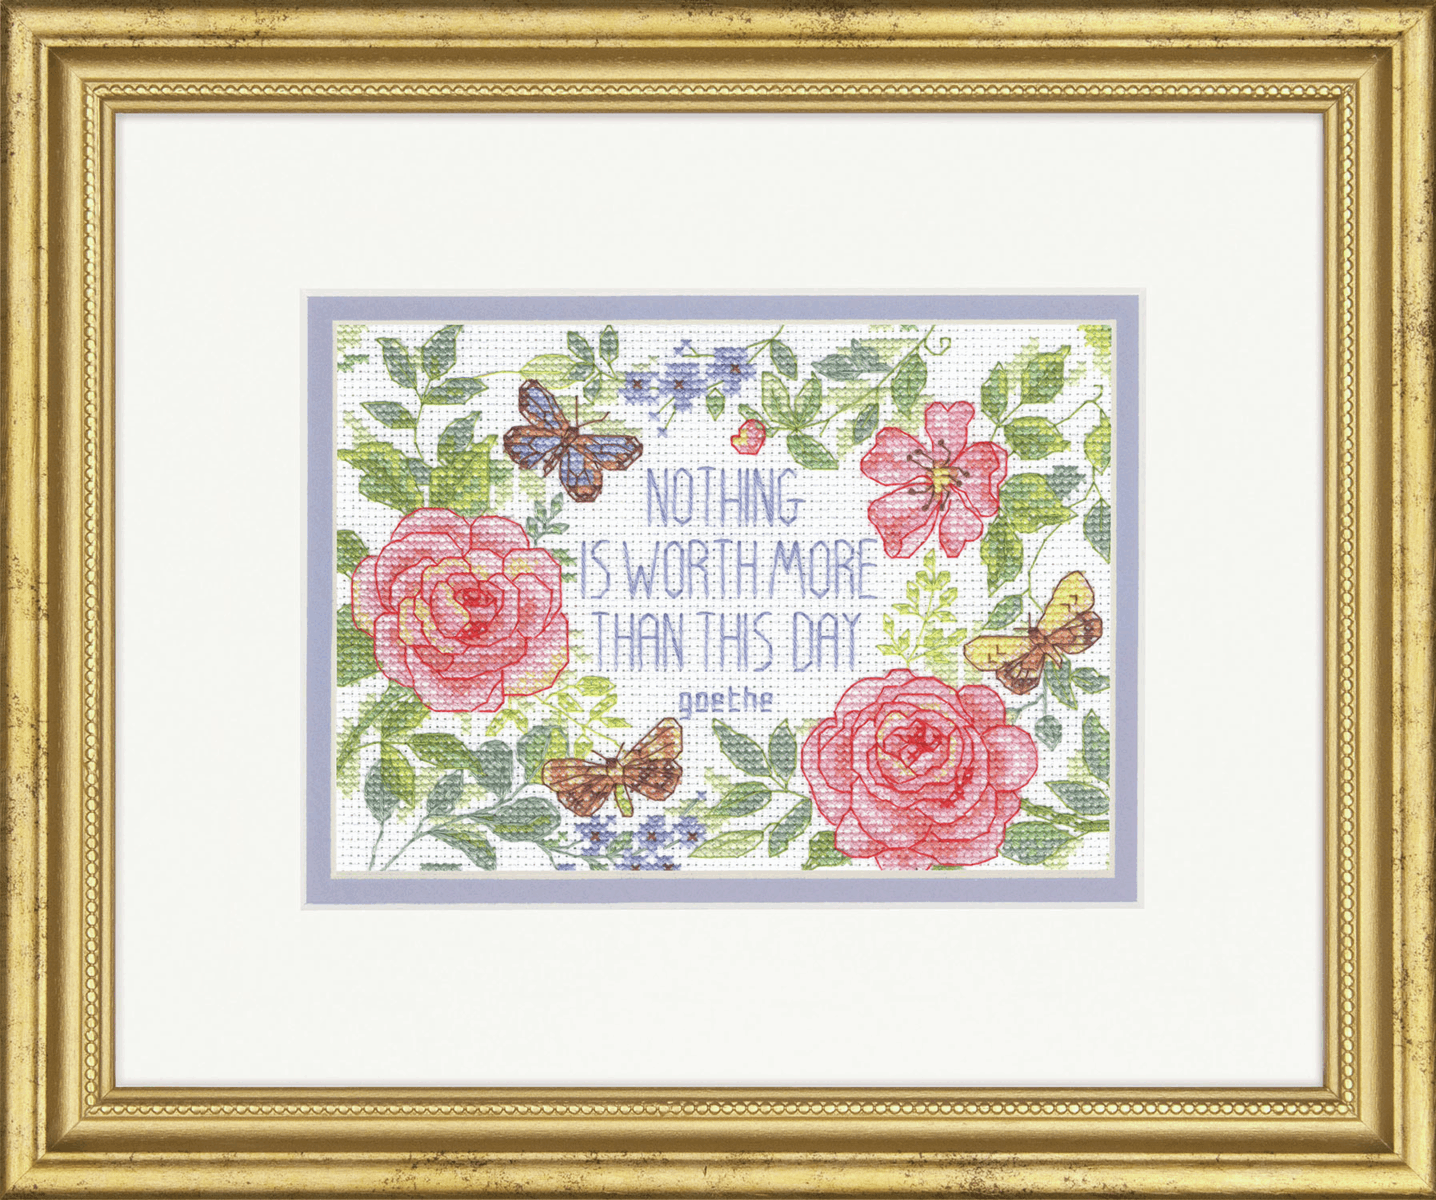 Picture of Counted Cross Stitch Kit: This Day Verse